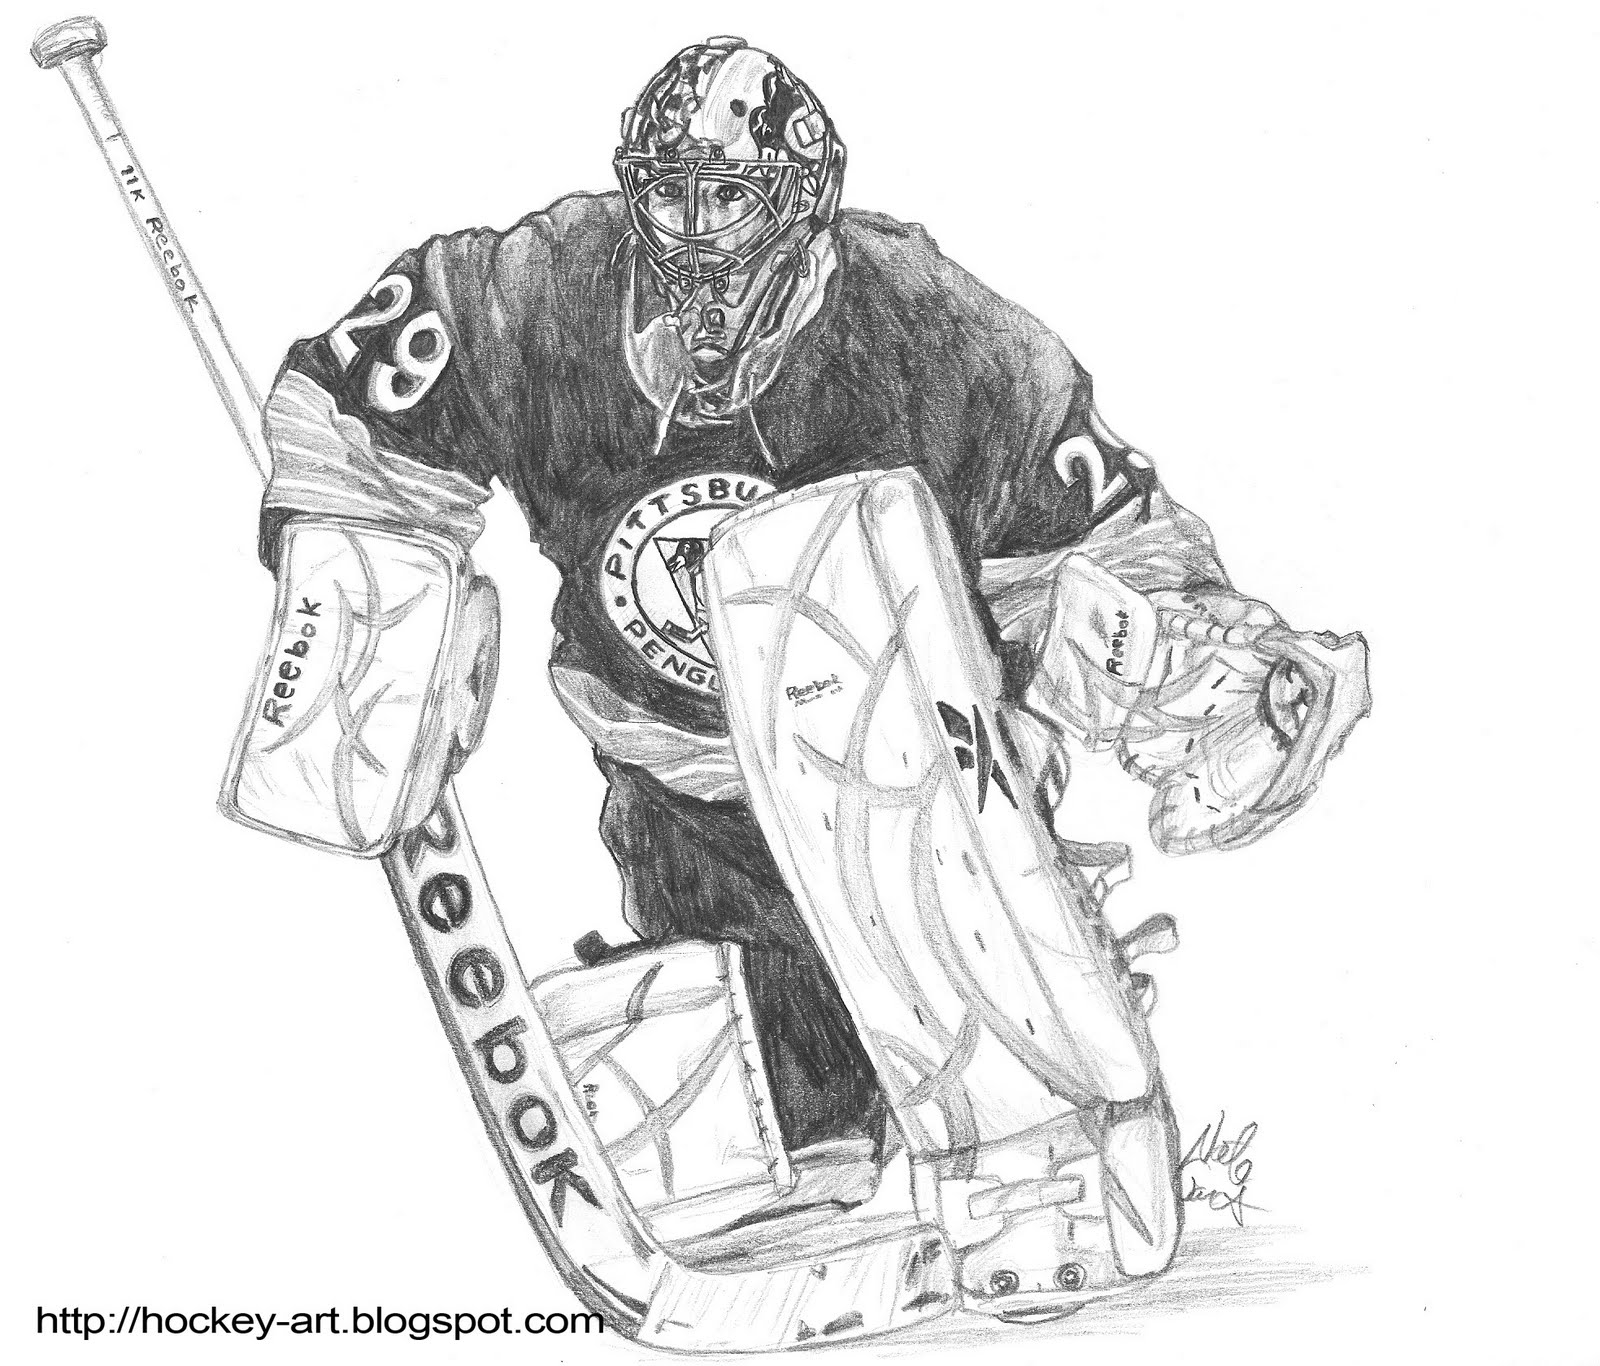 pittsburgh penguins coloring pages - hockey in art 2011 nhl playoffs pittsburgh penguins vs